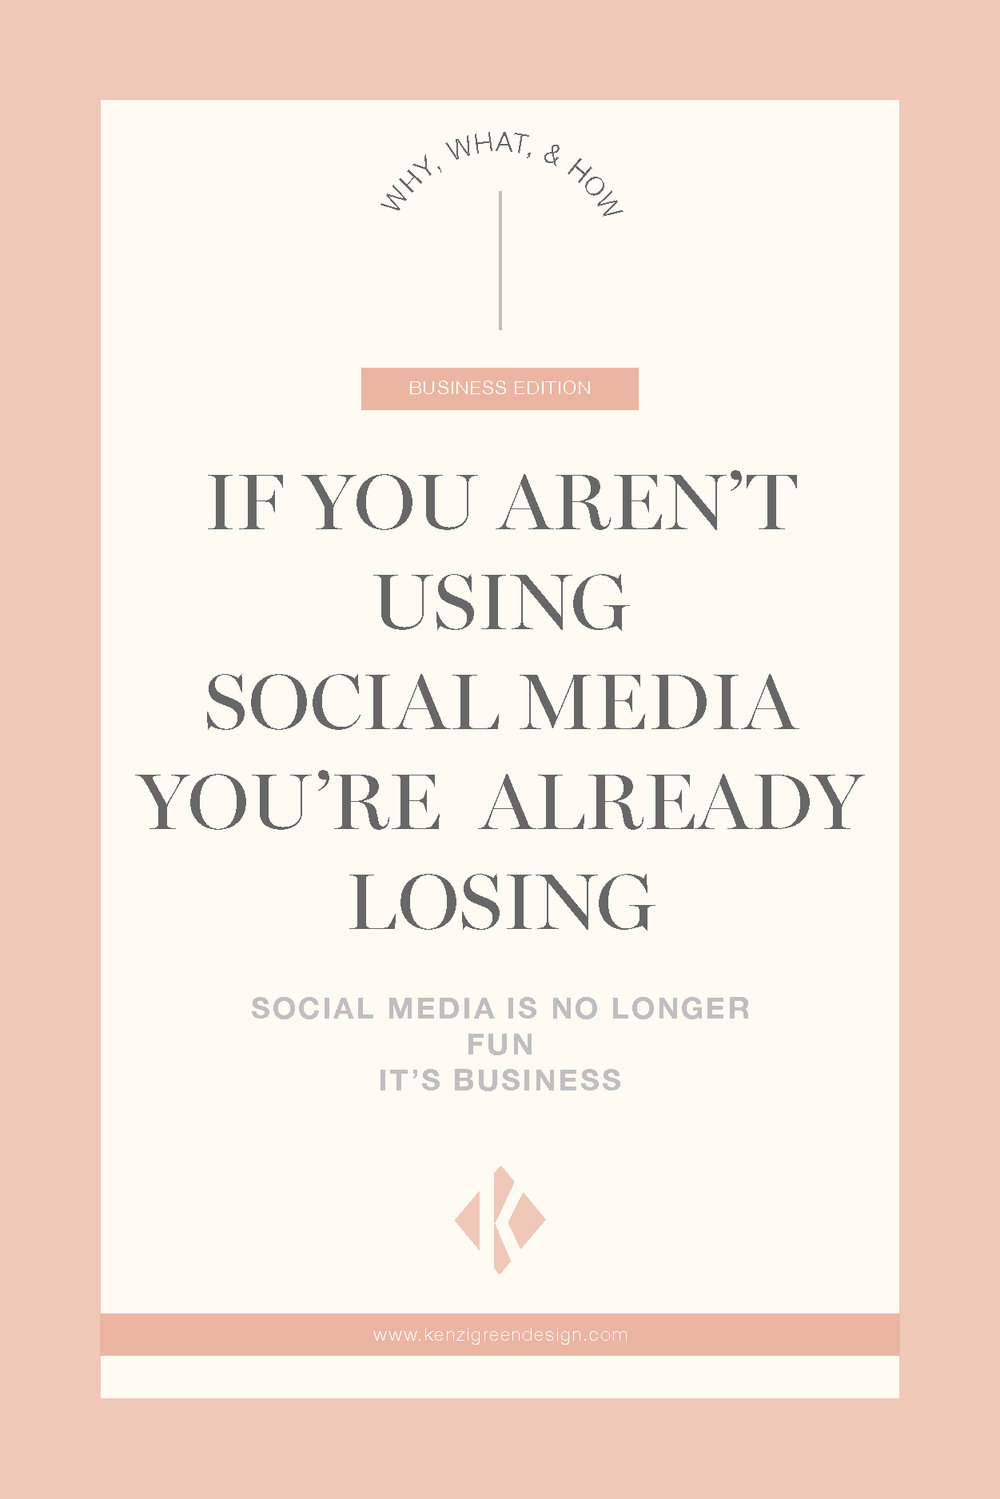 If you aren't using social media you're already losing